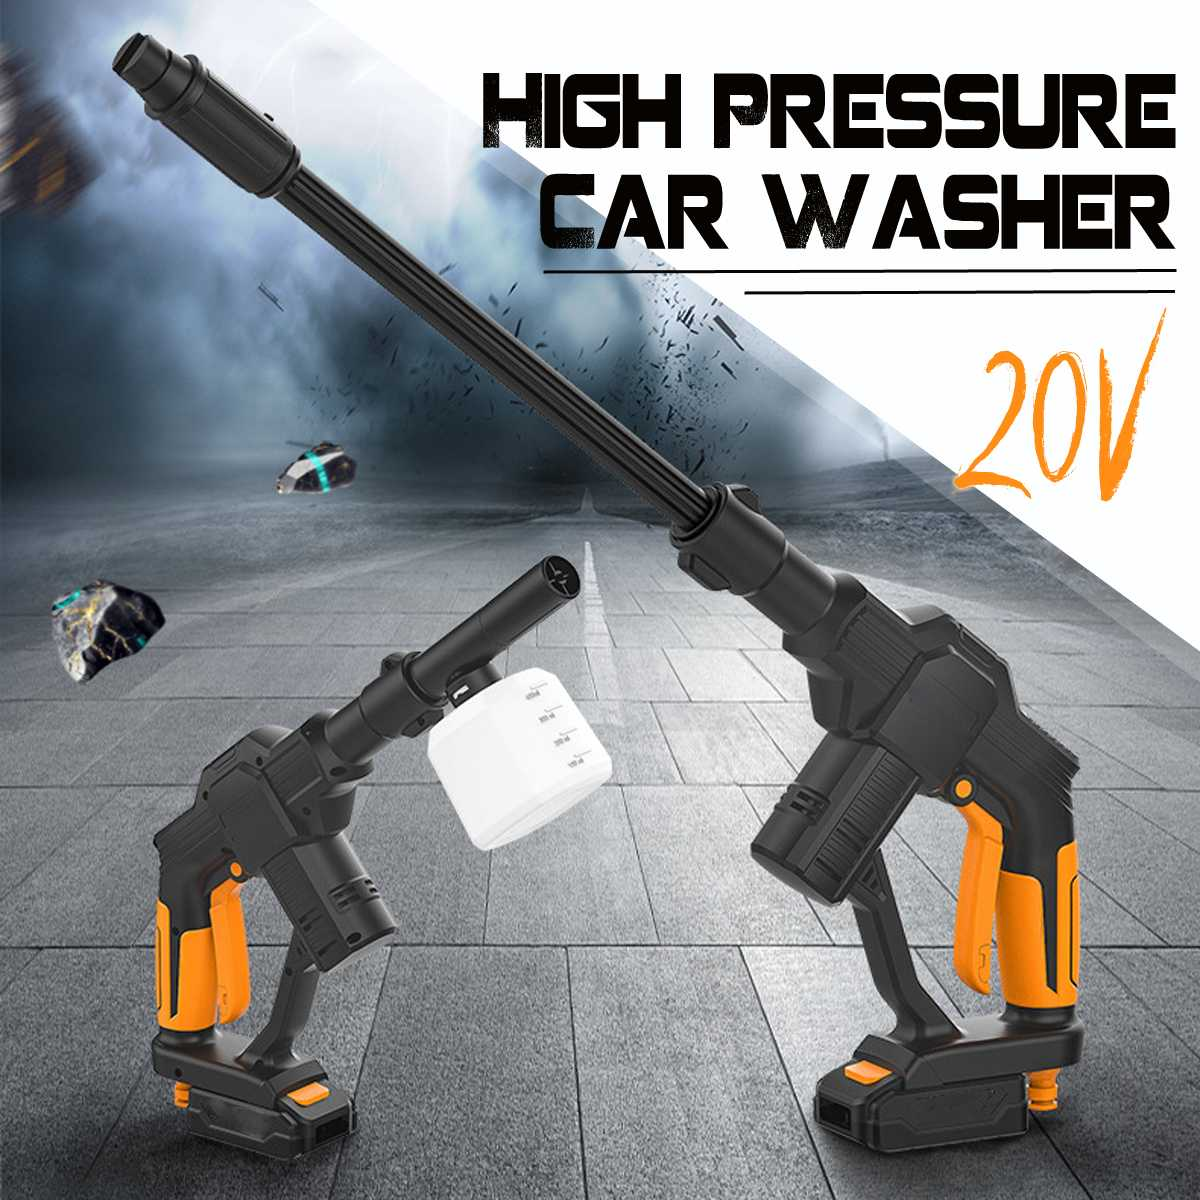 Wireless High Pressure Car Washer Guns 20V Portable Cordless Pressure Cleaner Rechargable Car Care Washing Machine W/ 5m Tube